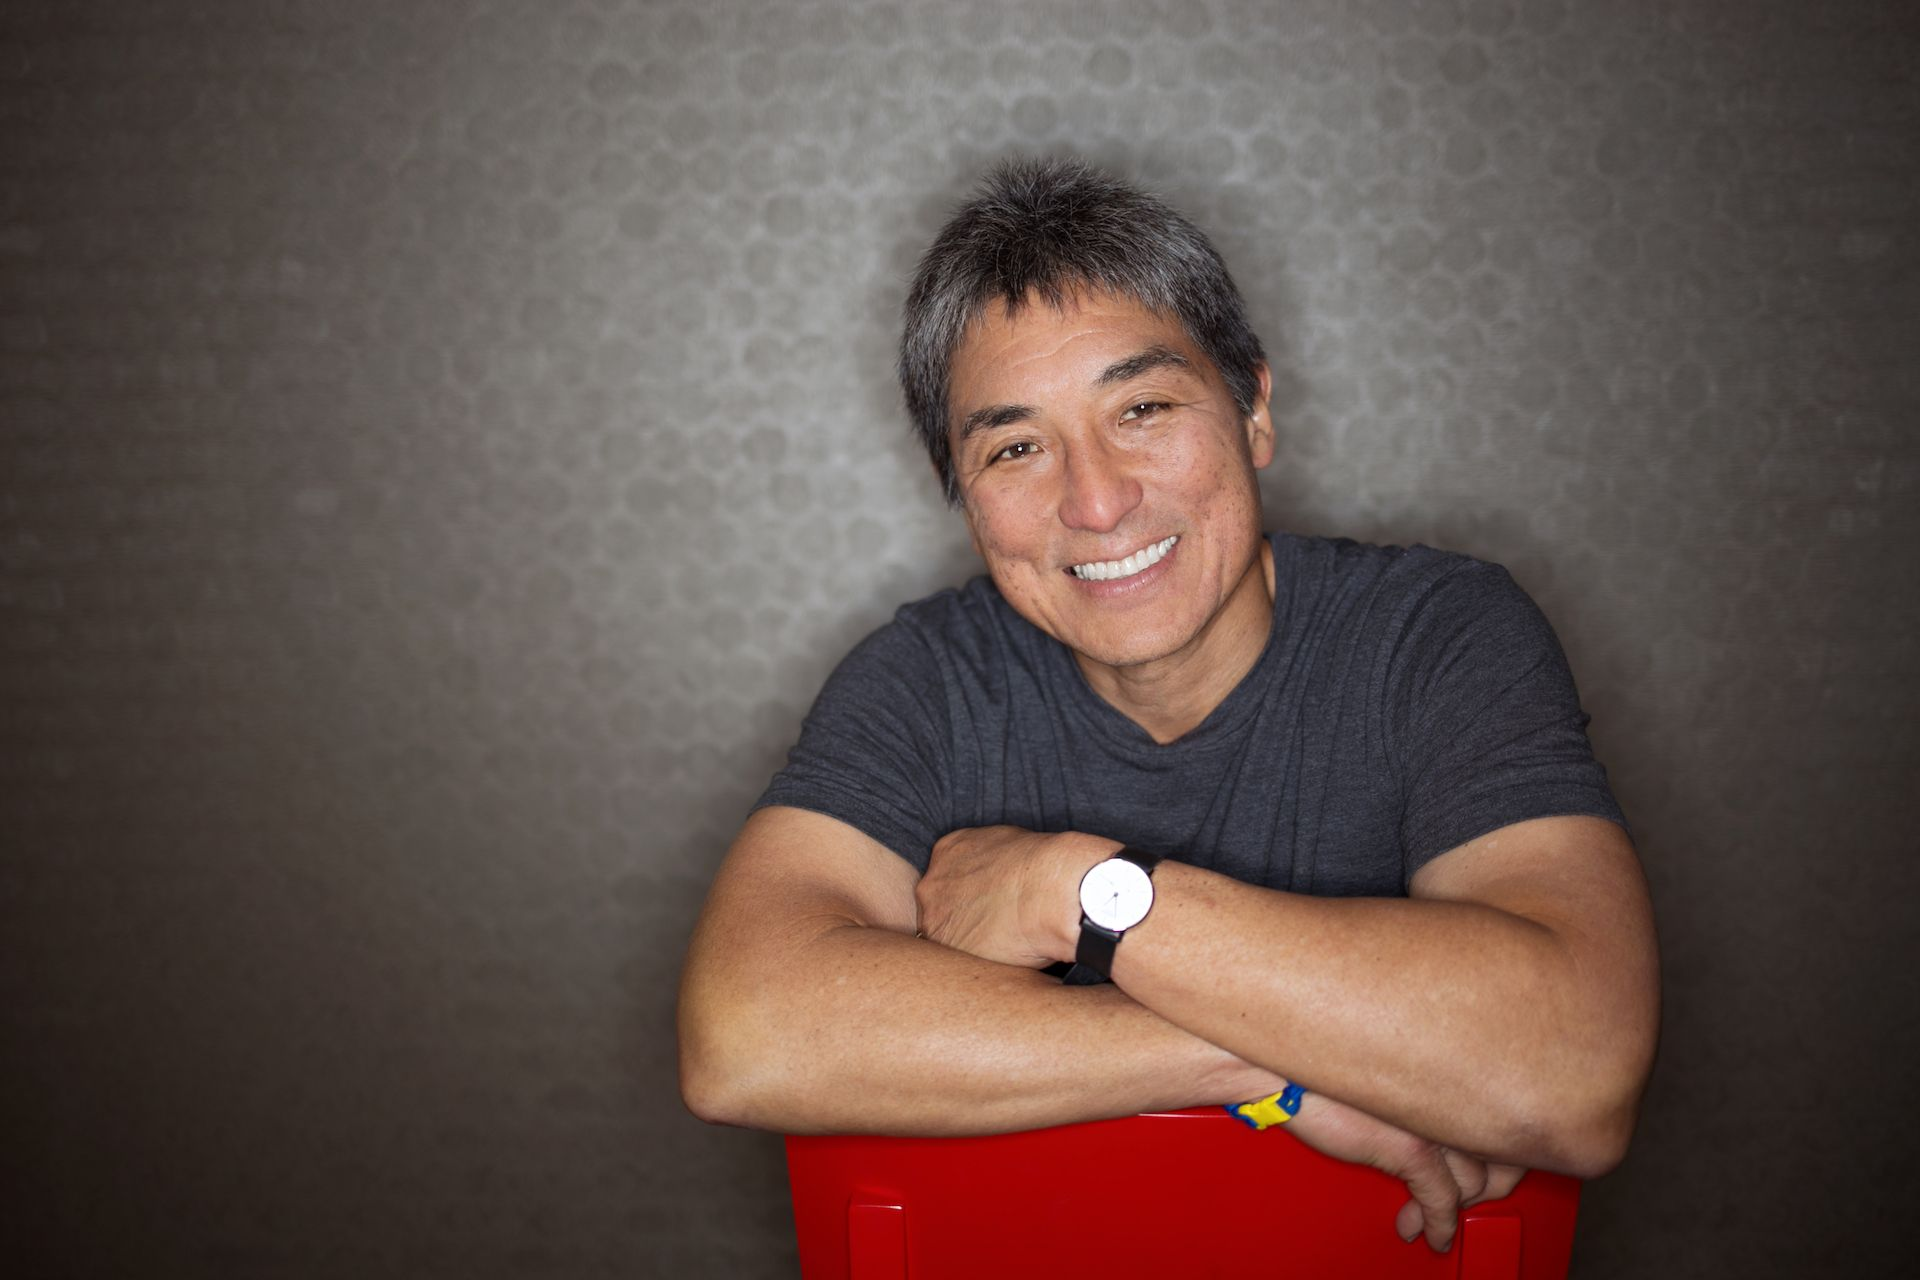 10 Practical Social Media Tips From Guy Kawasaki